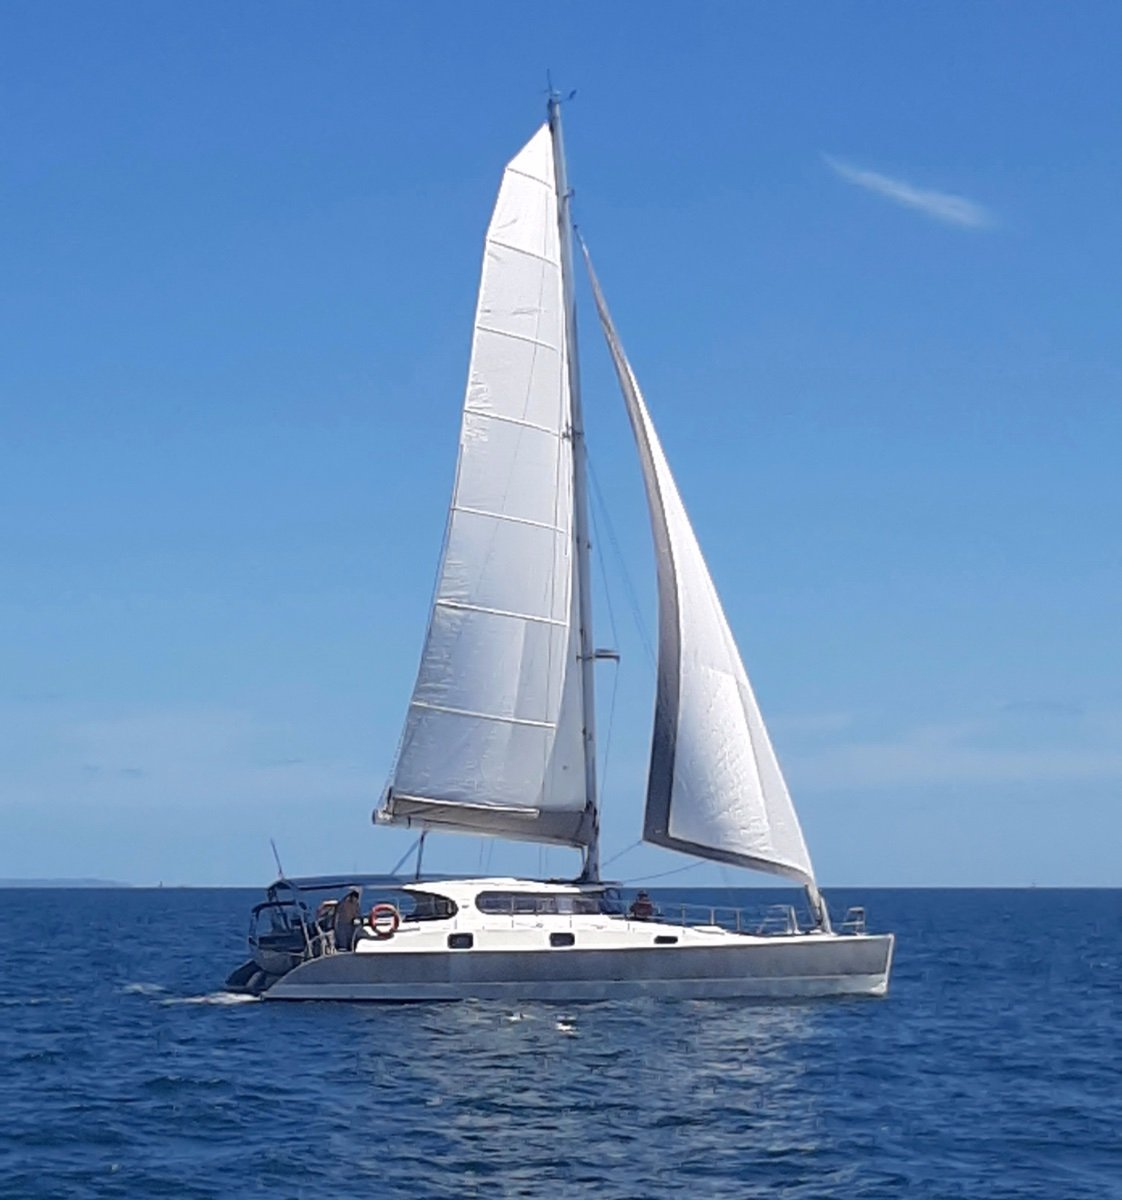 Mumby 2018 Aluminium Cruising Catamaran 49ft 15m